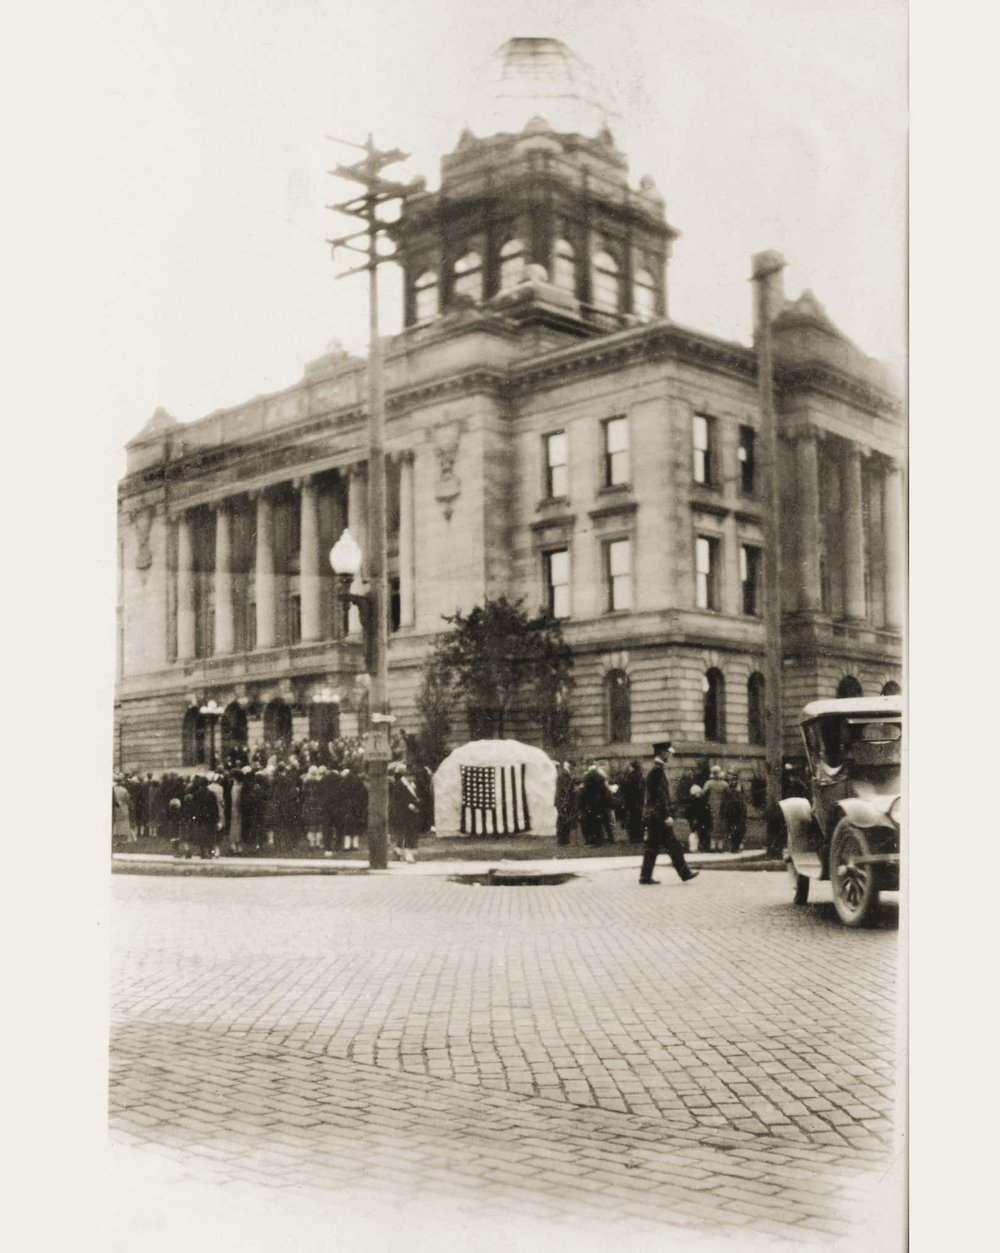 The Salomon Brothers monument was officially dedicated on Sunday, October 23, 1927 - outside of the Manitowoc County Courthouse.